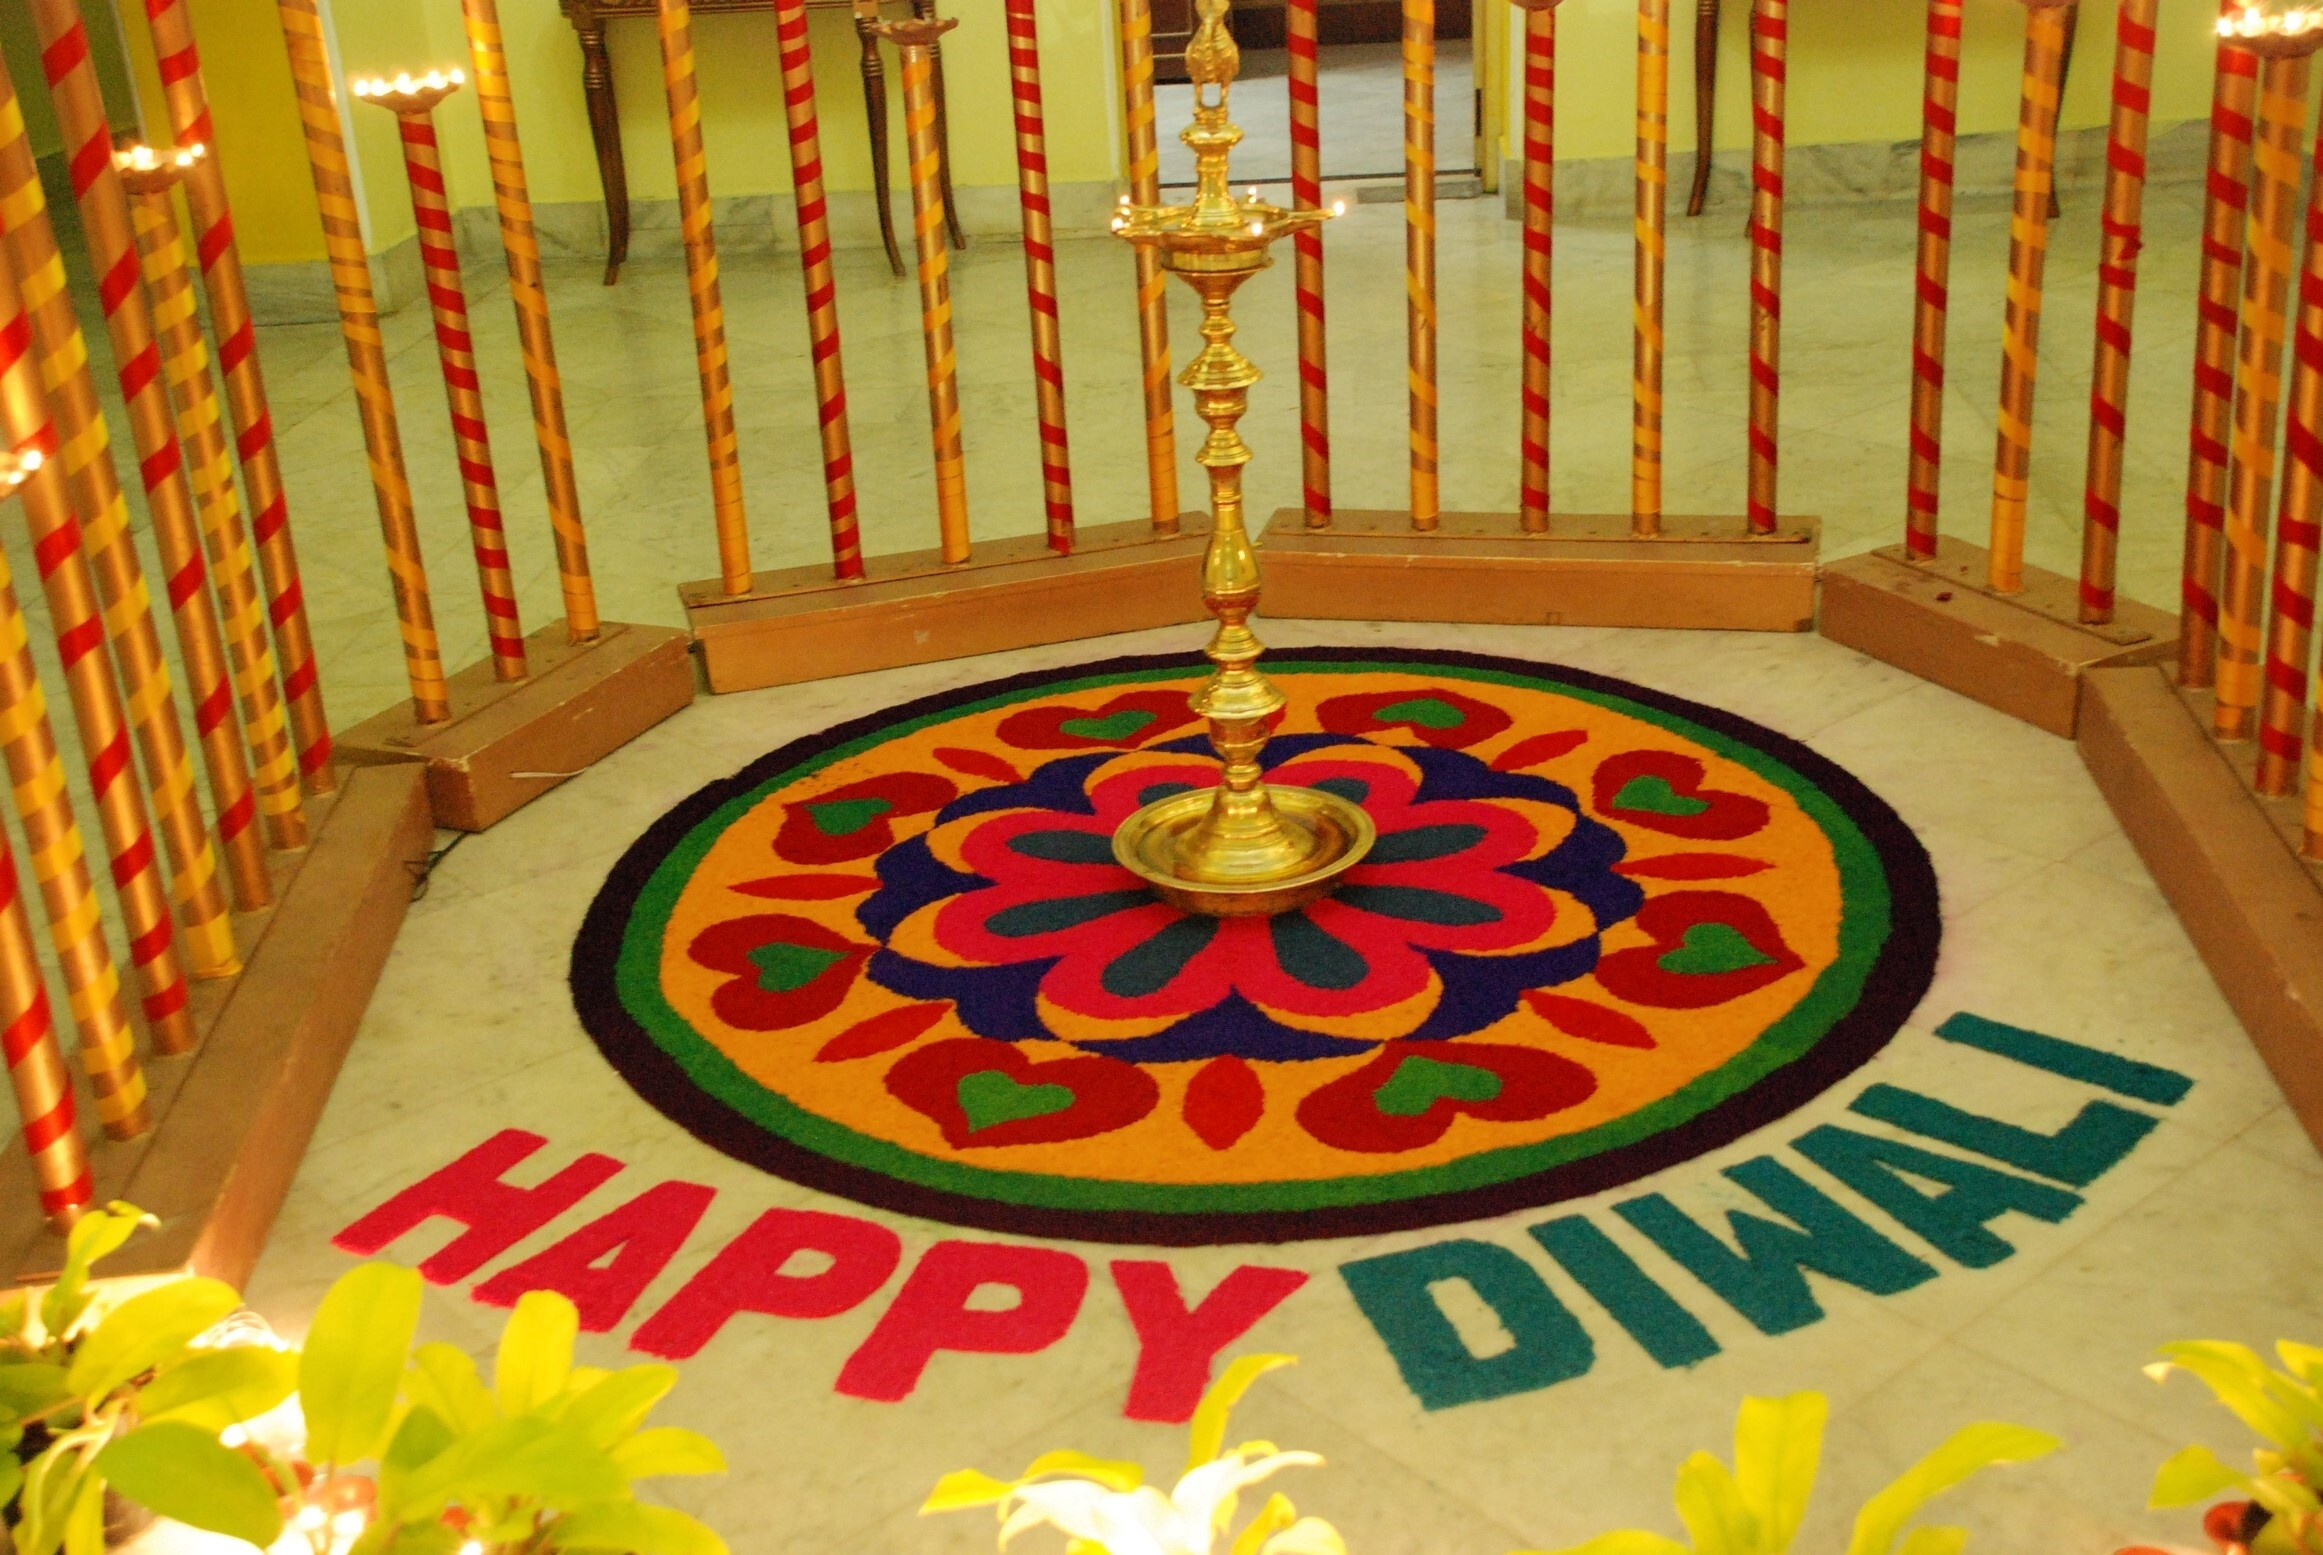 Happy Diwali Rangoli Wallpaper Hd Wallpapers